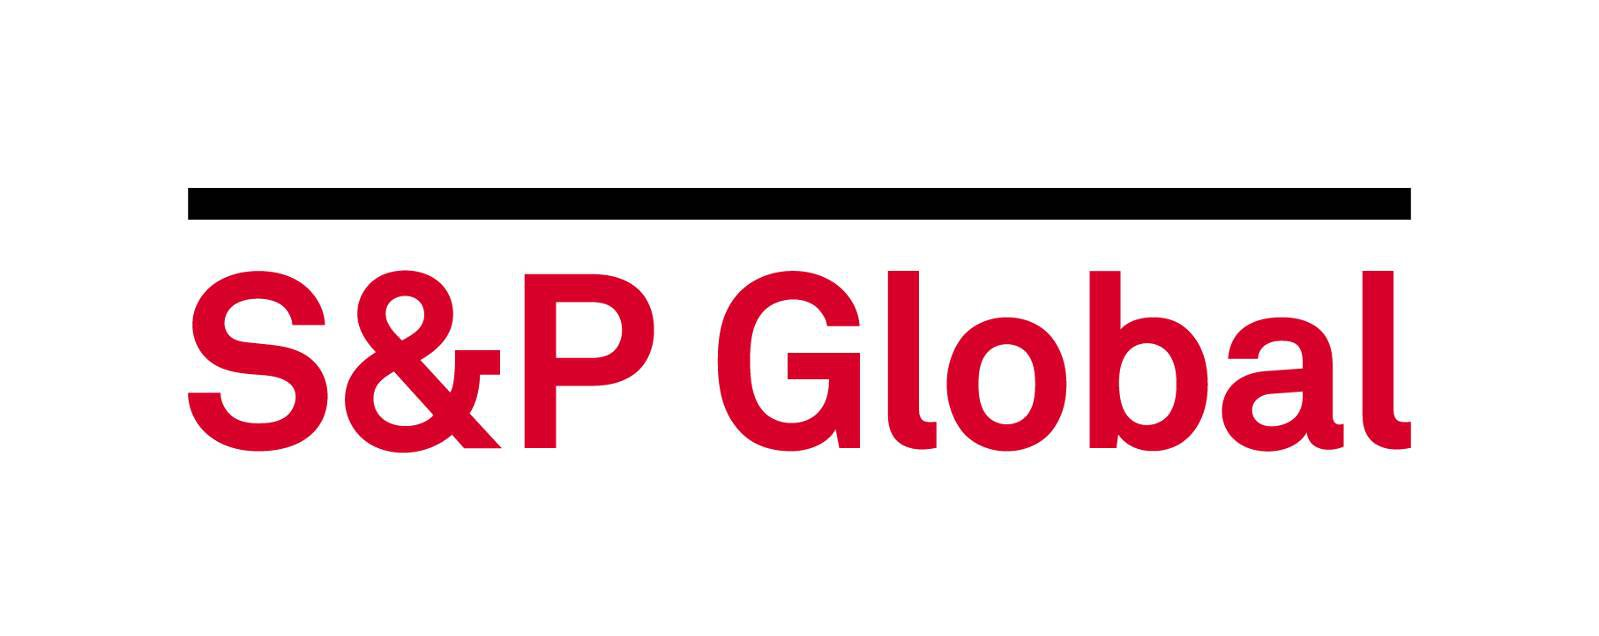 S&P Global Inc